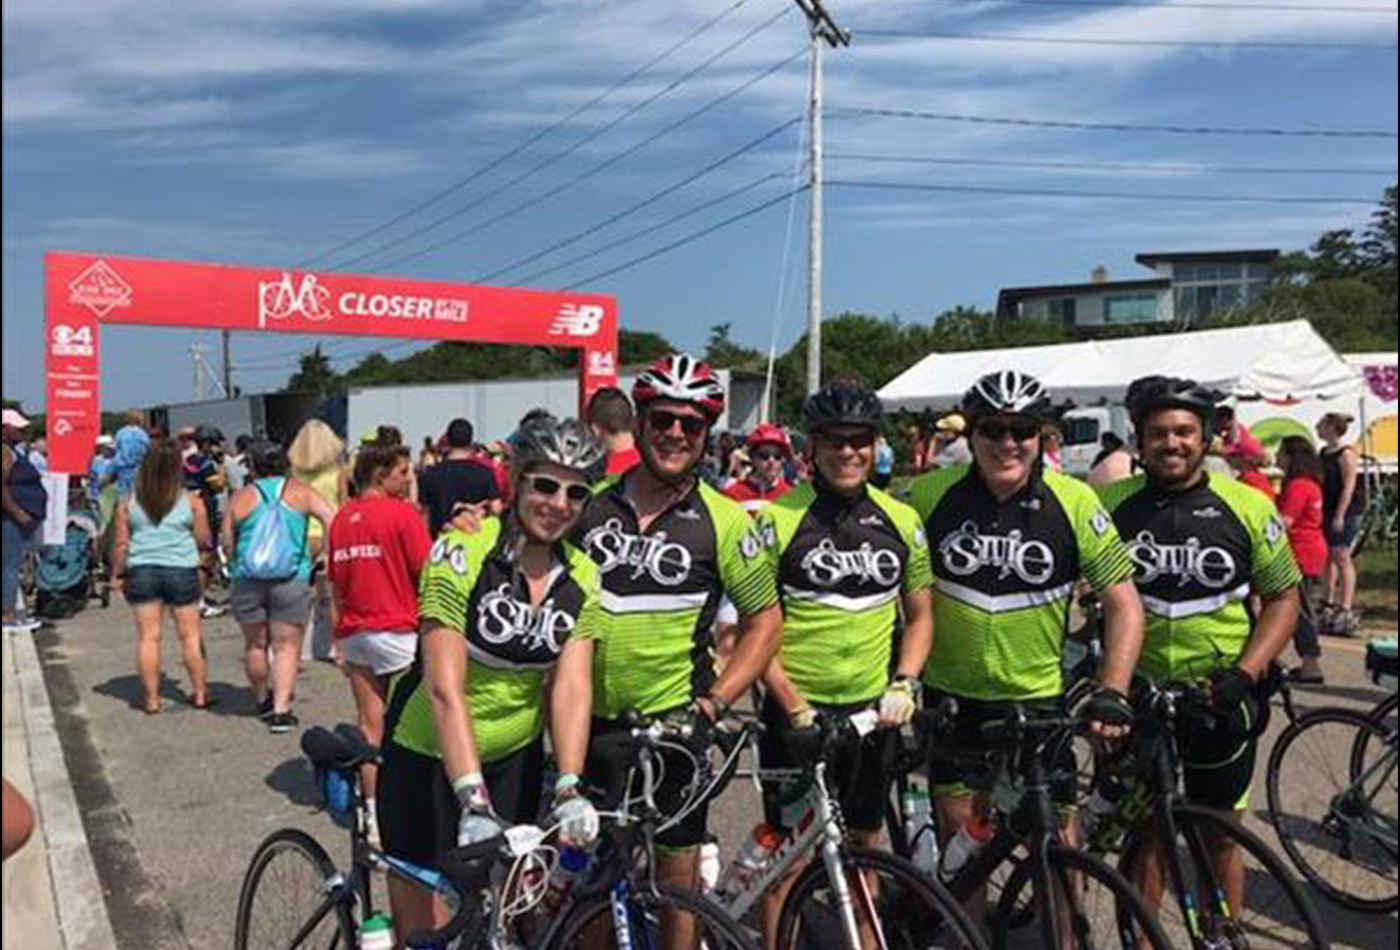 A team of bicyclists smile together on their bikes.